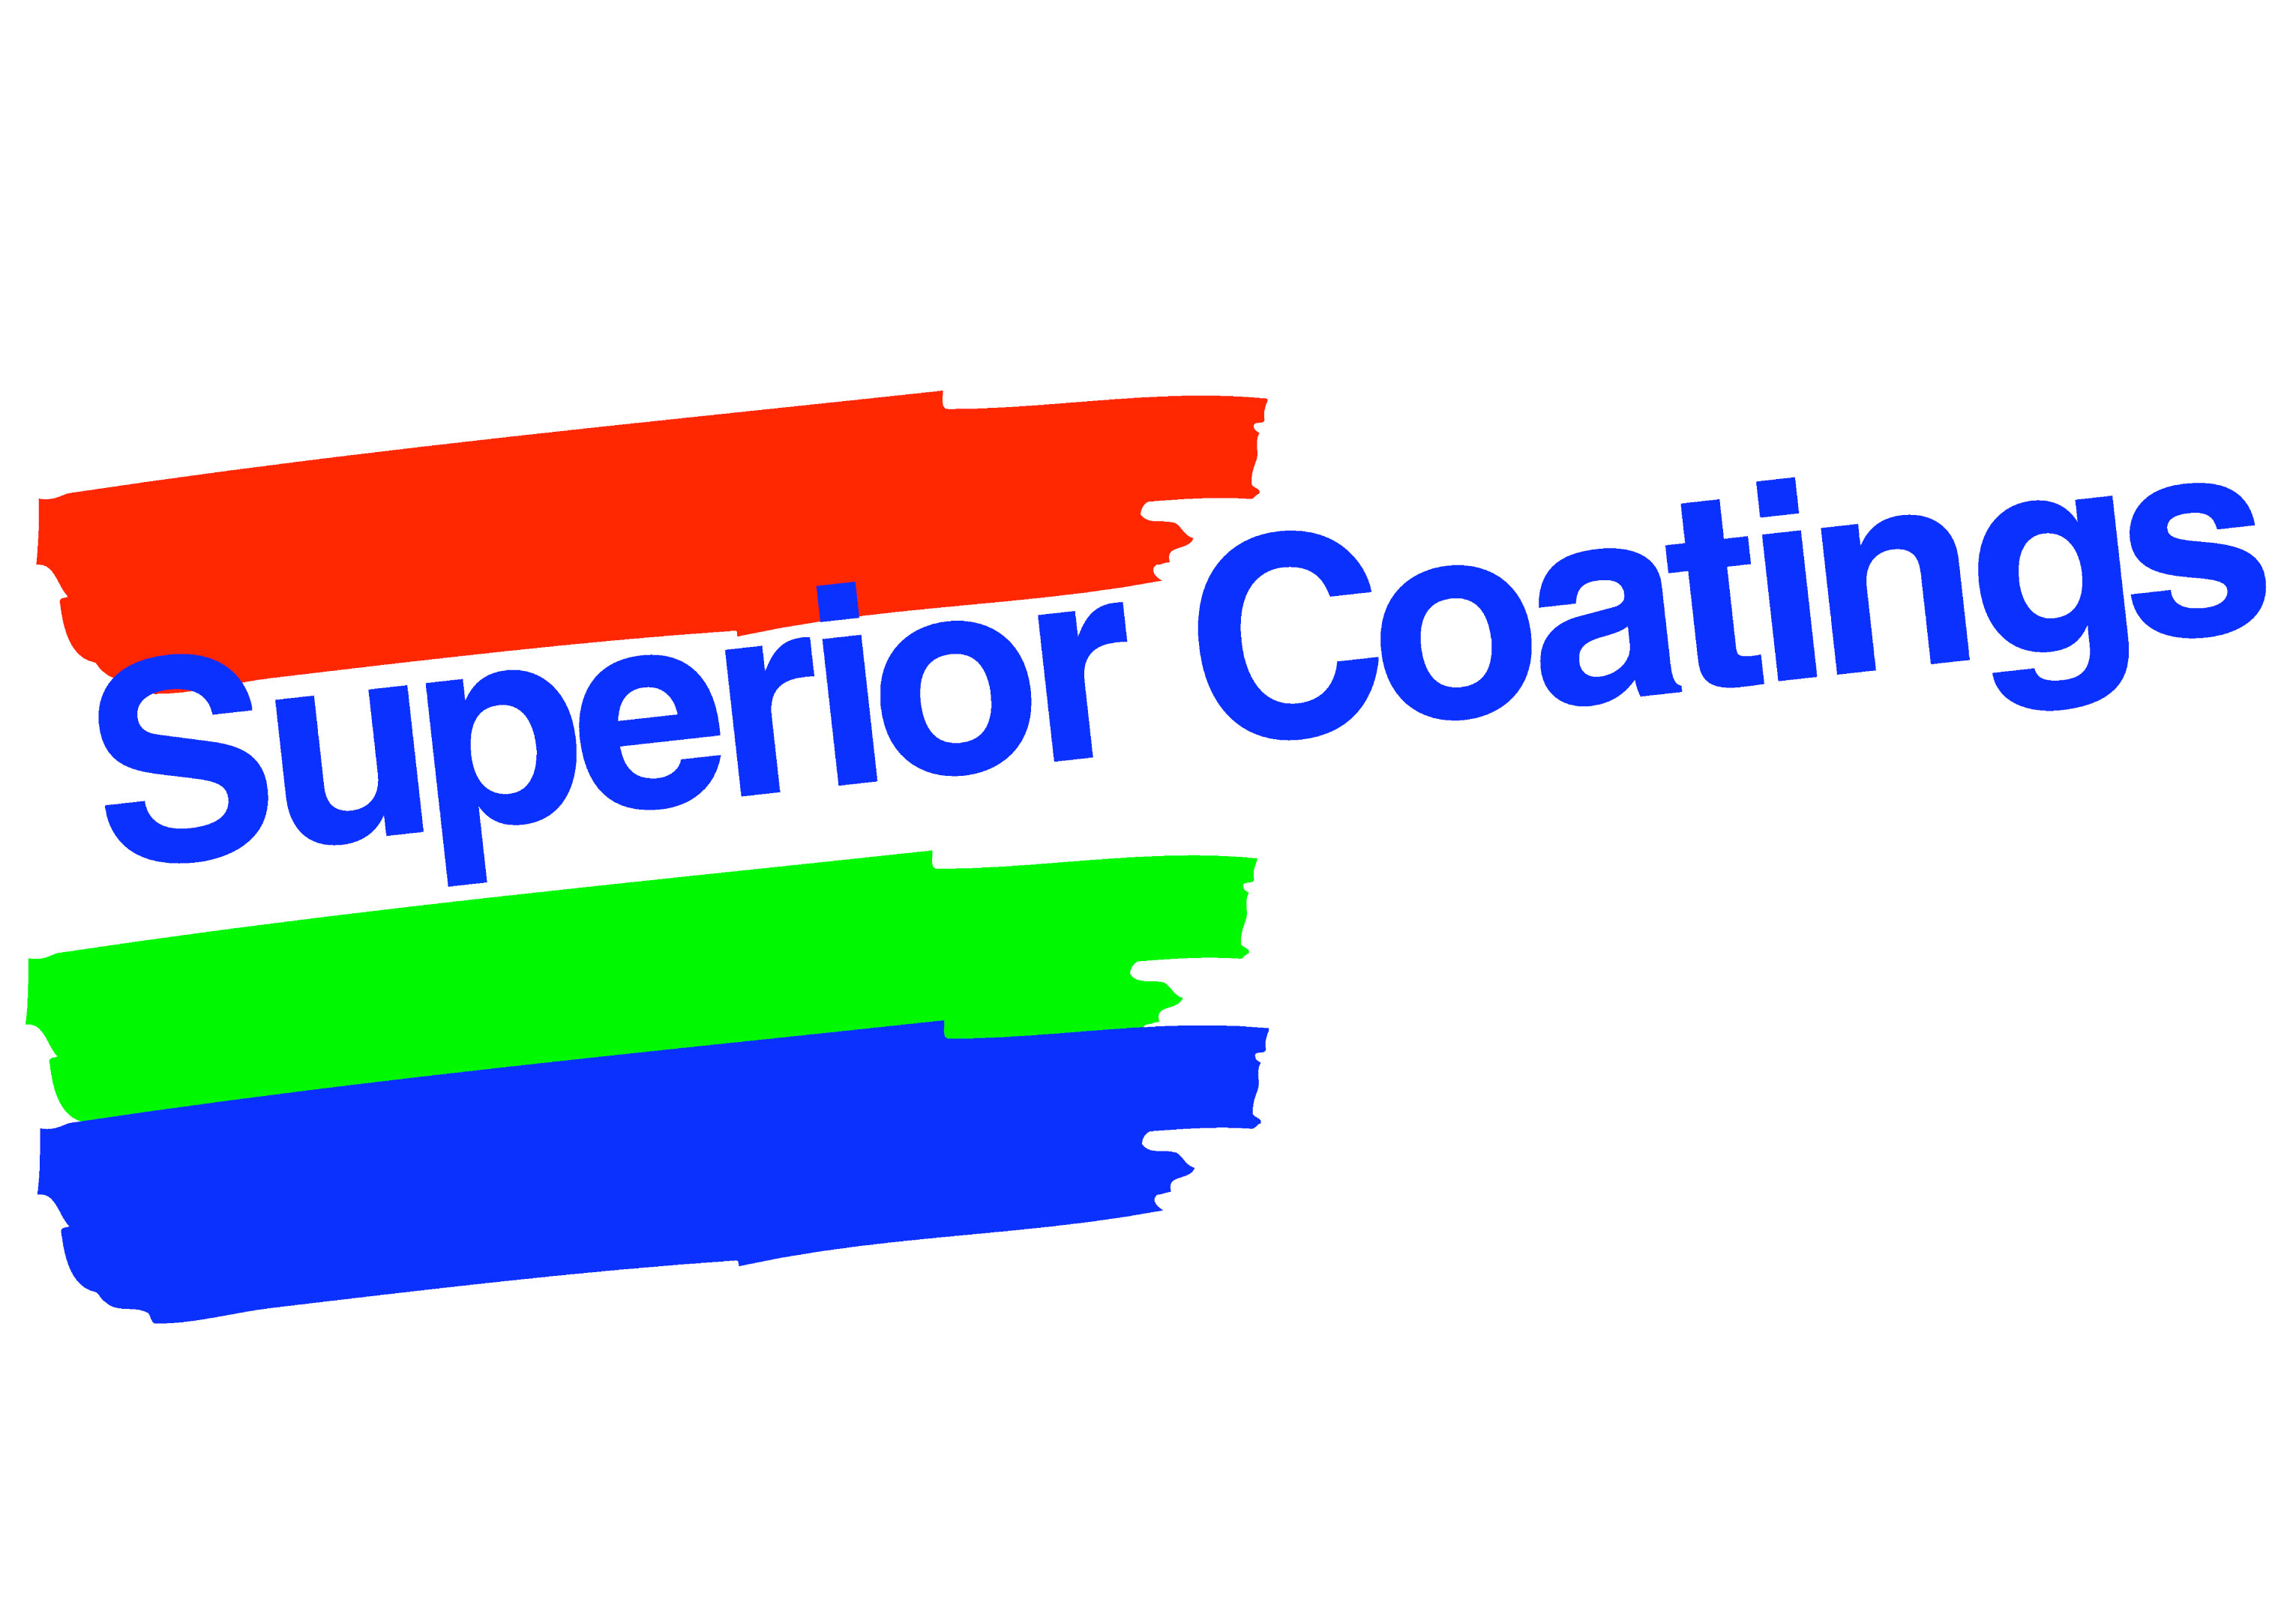 Superior_Coatings_Logo:Superior_Coatings